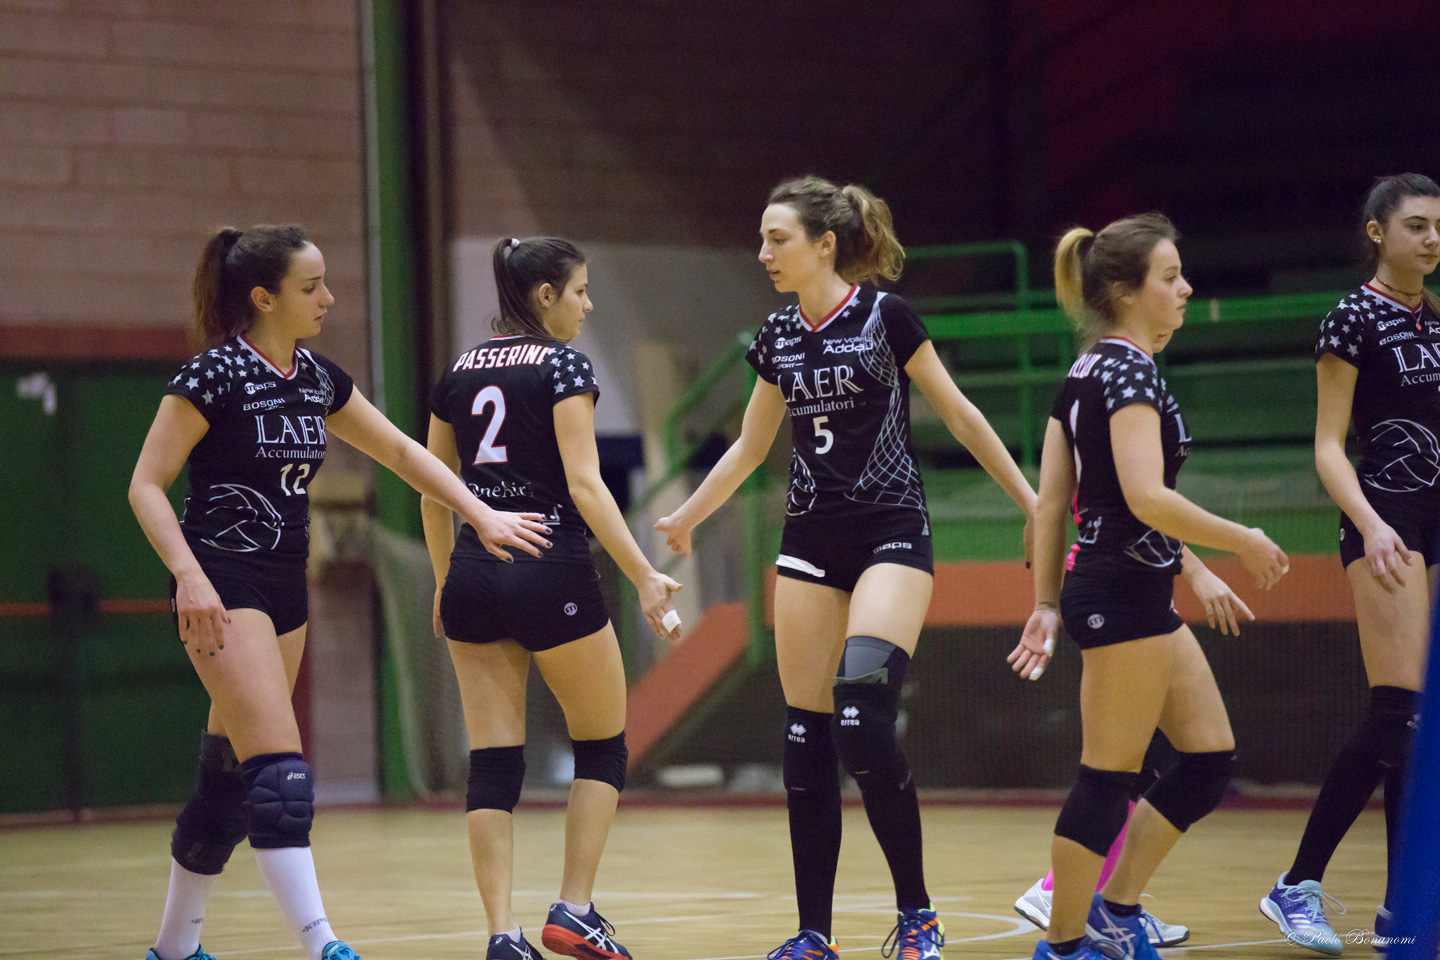 20190202_201210_new_volley_adda_0028